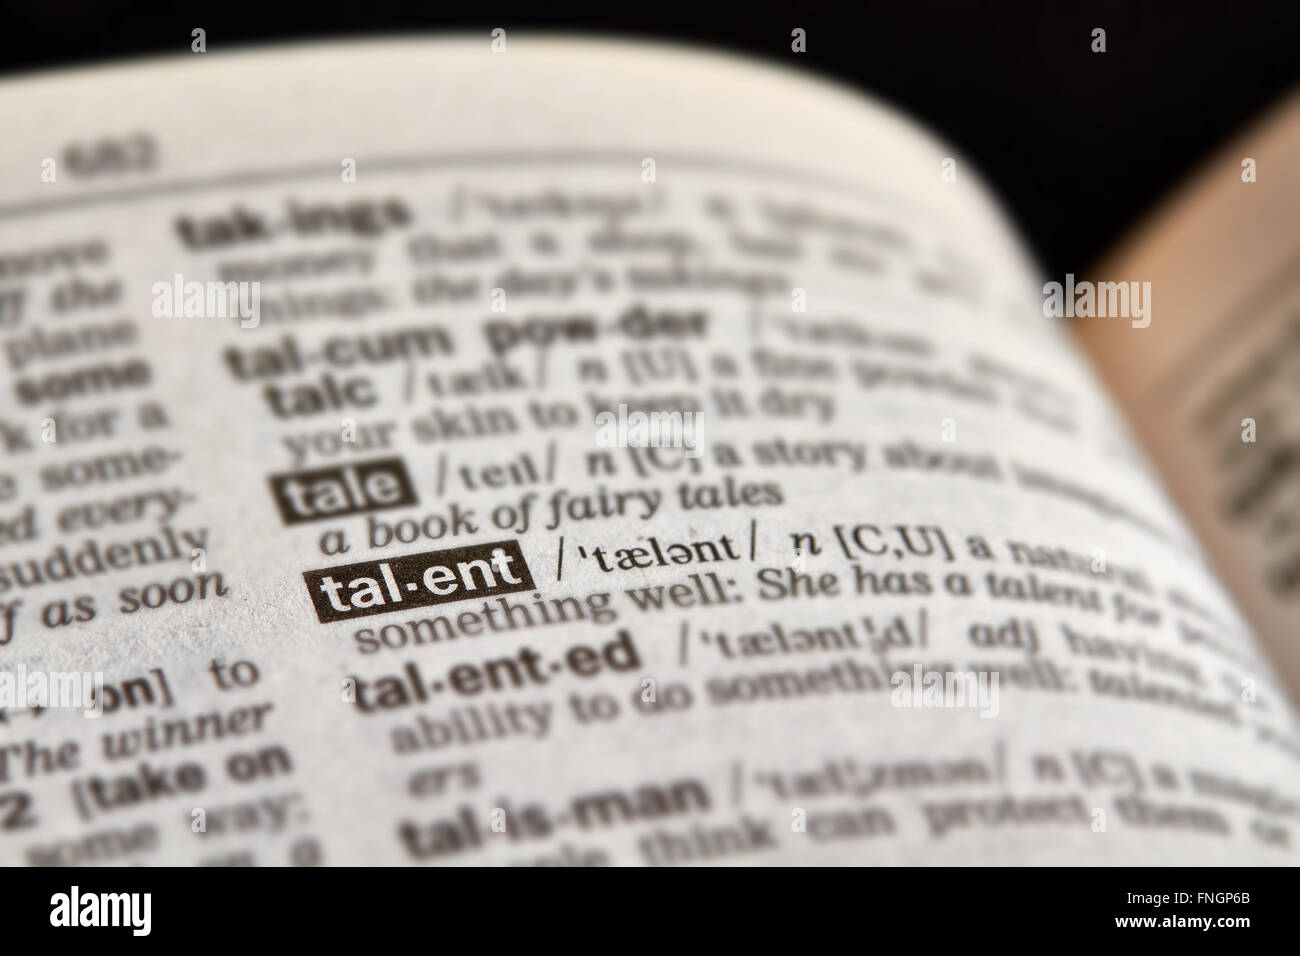 Talent-Wort-Definition-Text im Wörterbuch Stockbild